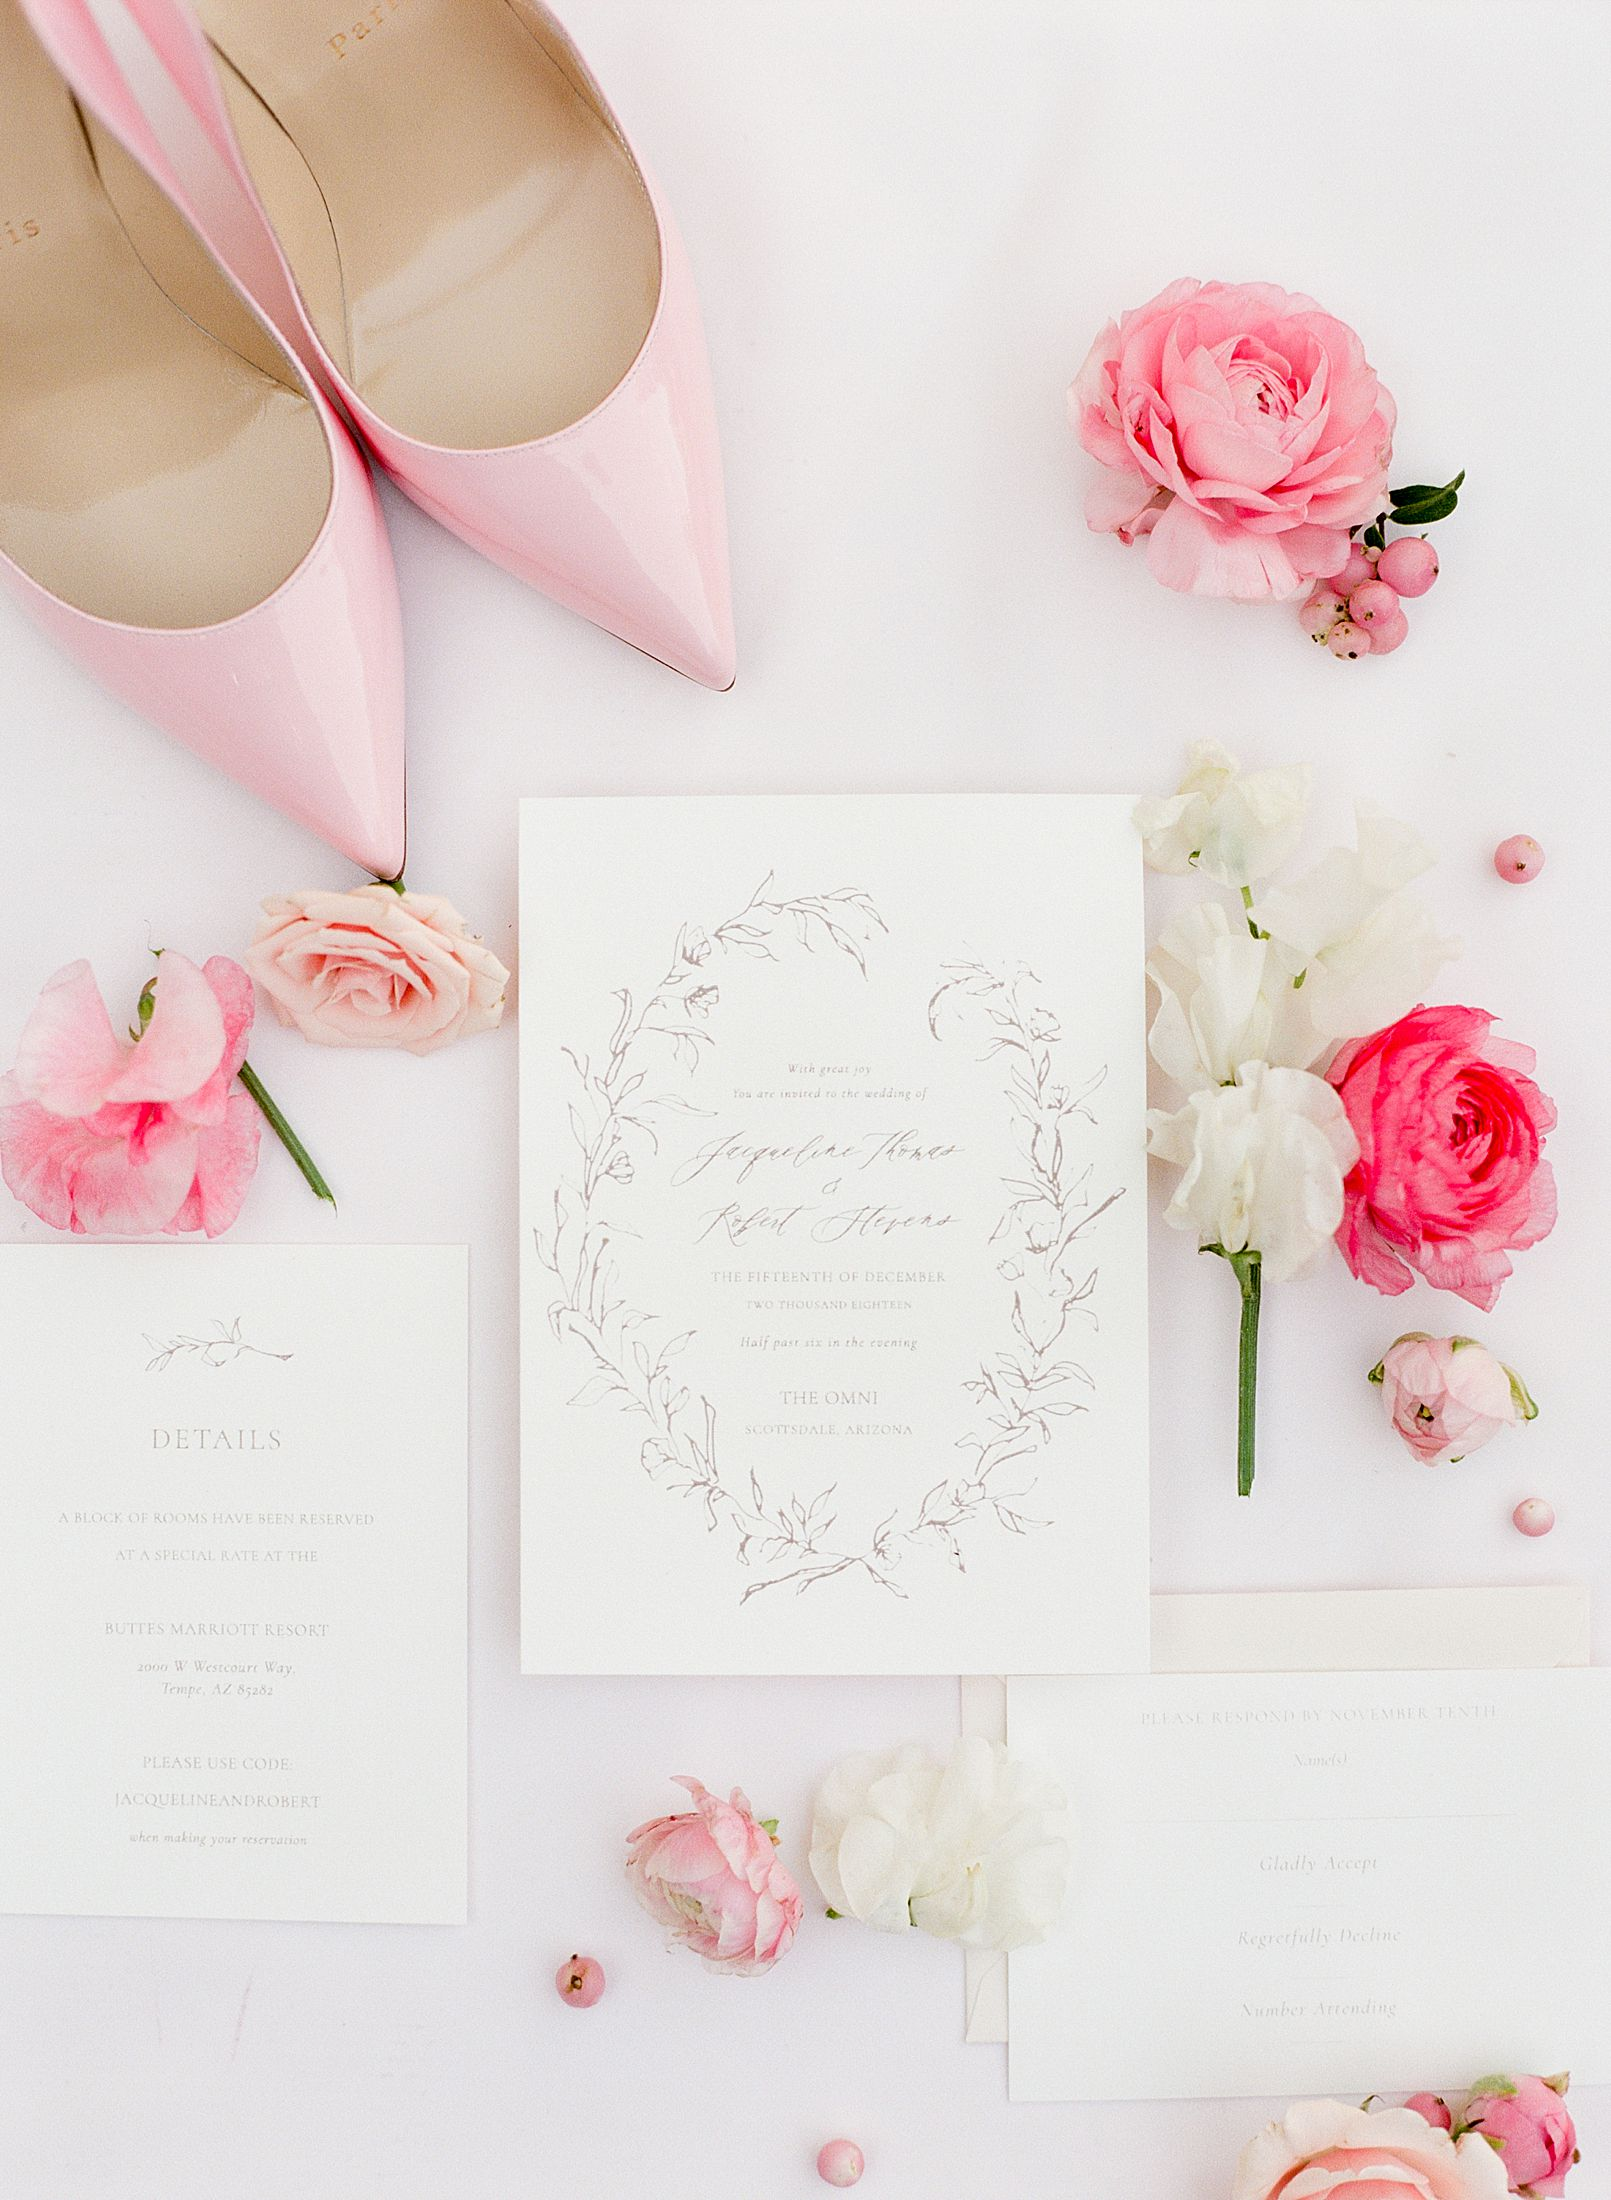 Pink Ombre Wedding Inspiration on Style Me Pretty - Royal Palms Wedding - Scottsdale Wedding - Ashley Baumgartner - Bloom and Blueprint - Wedding Puppies - Bulldog Puppies_0027.jpg